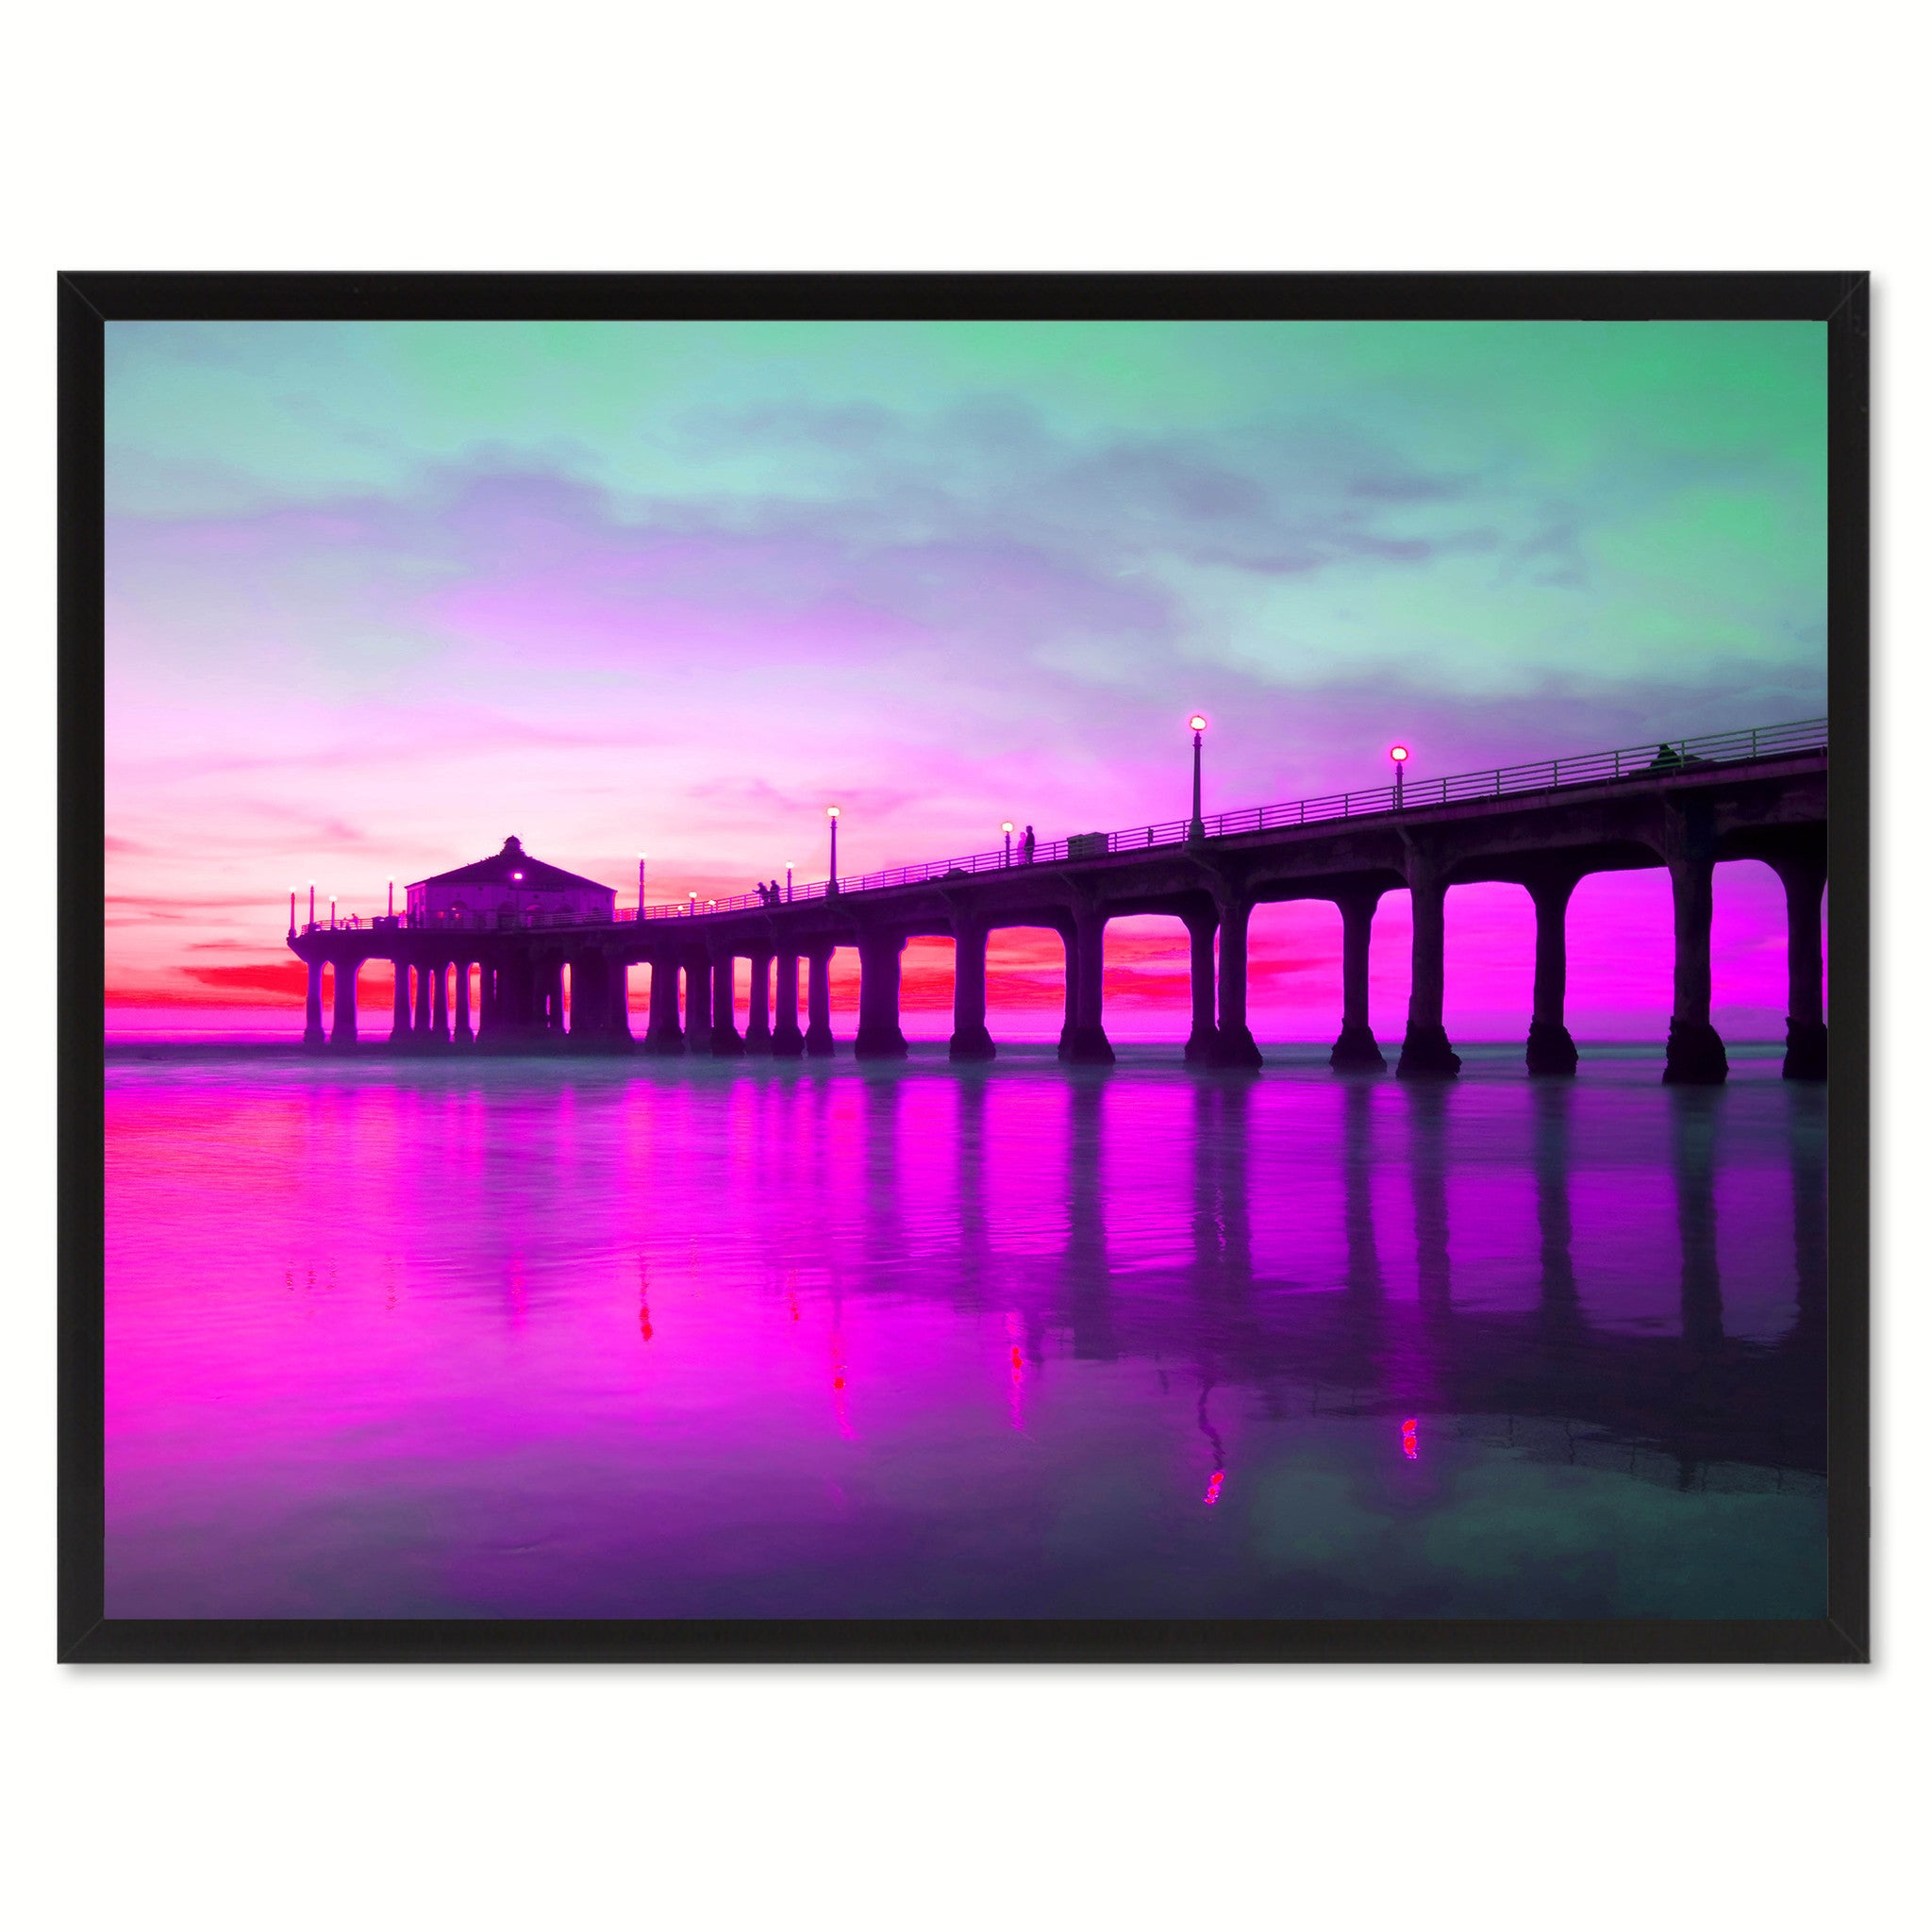 Manhattan Beach California Pink Landscape Photo Canvas Print Pictures Frames Home Décor Wall Art Gifts